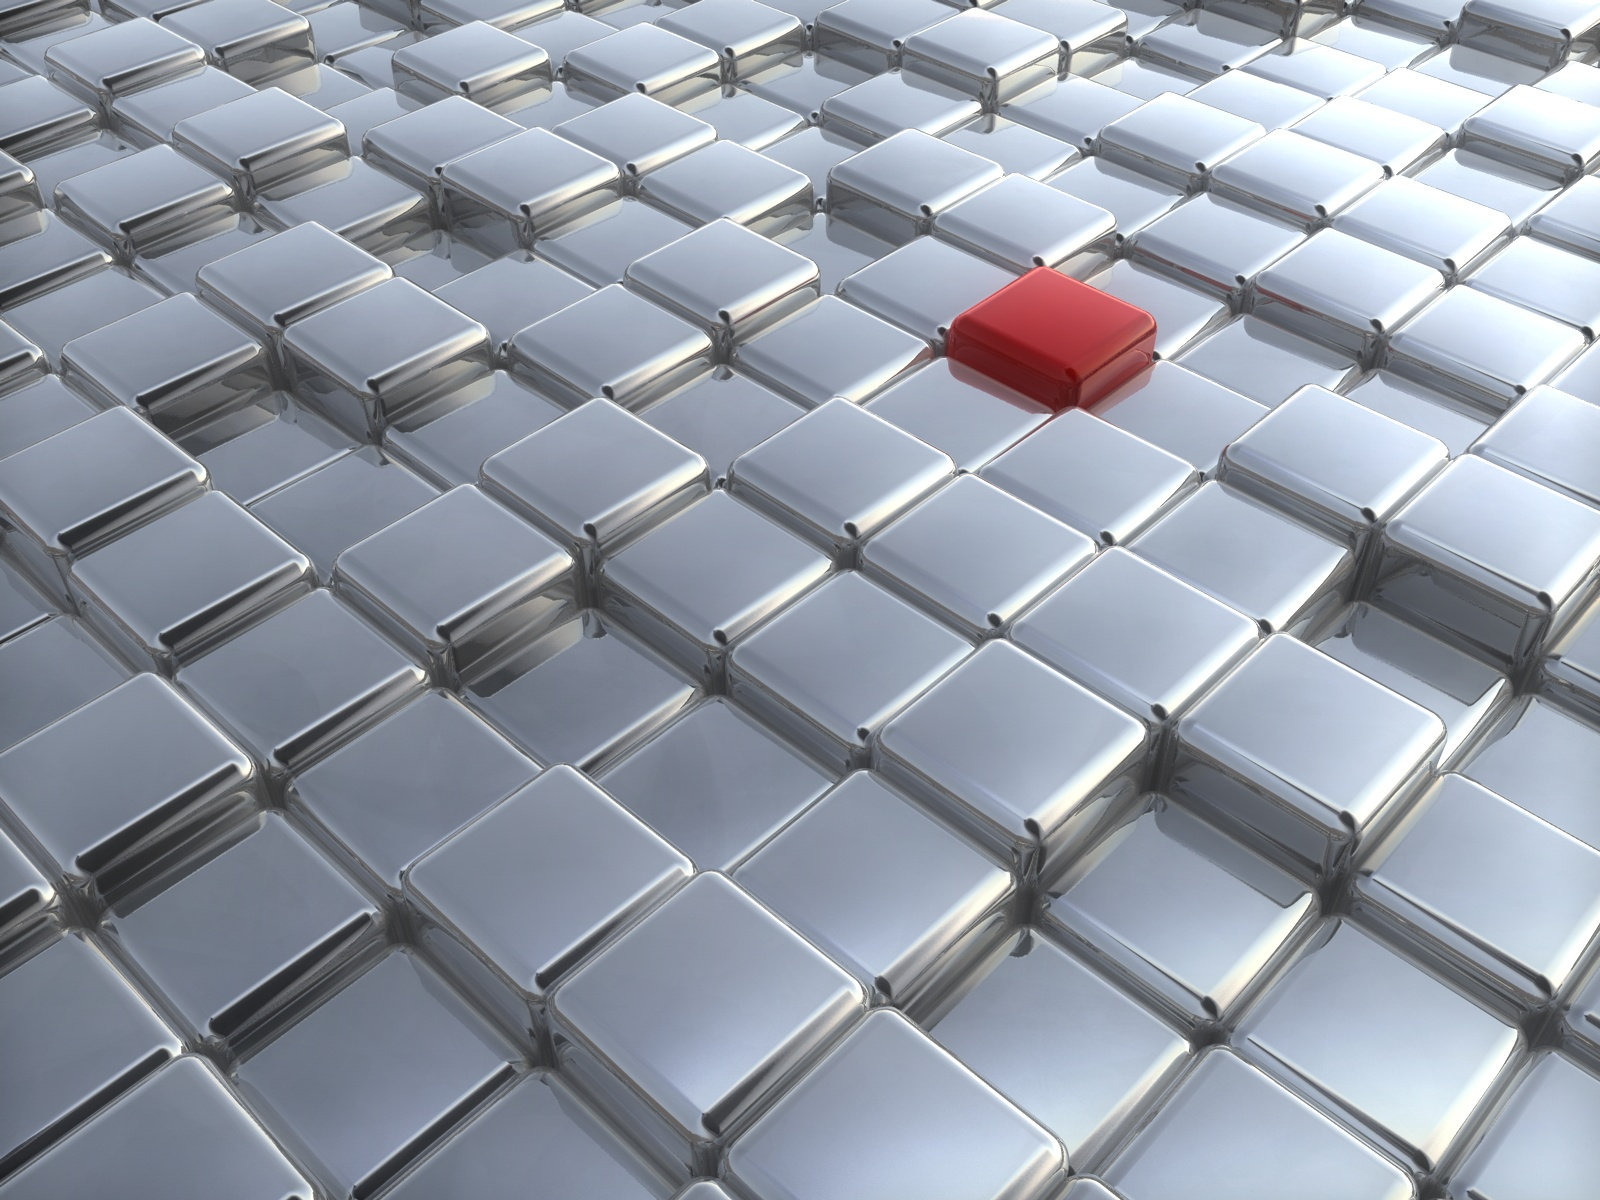 3D Cube Wallpapers wallpapers 2012 1600x1200